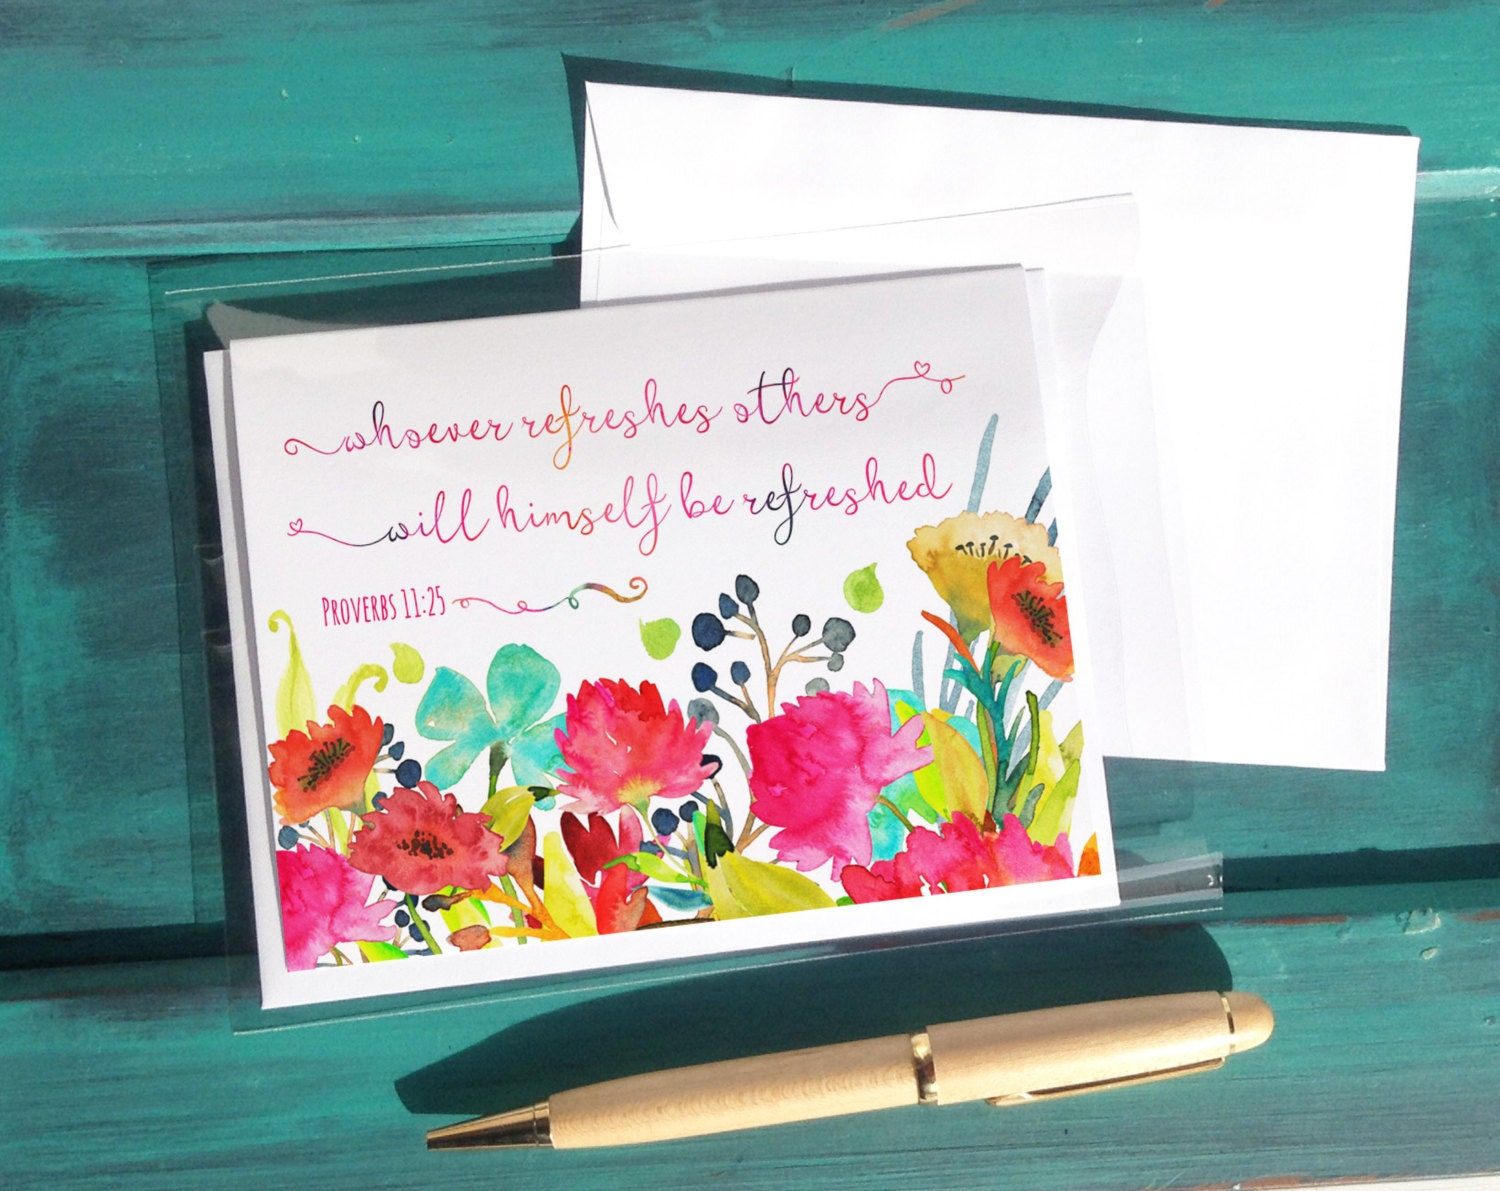 Refreshing others jw greeting cards